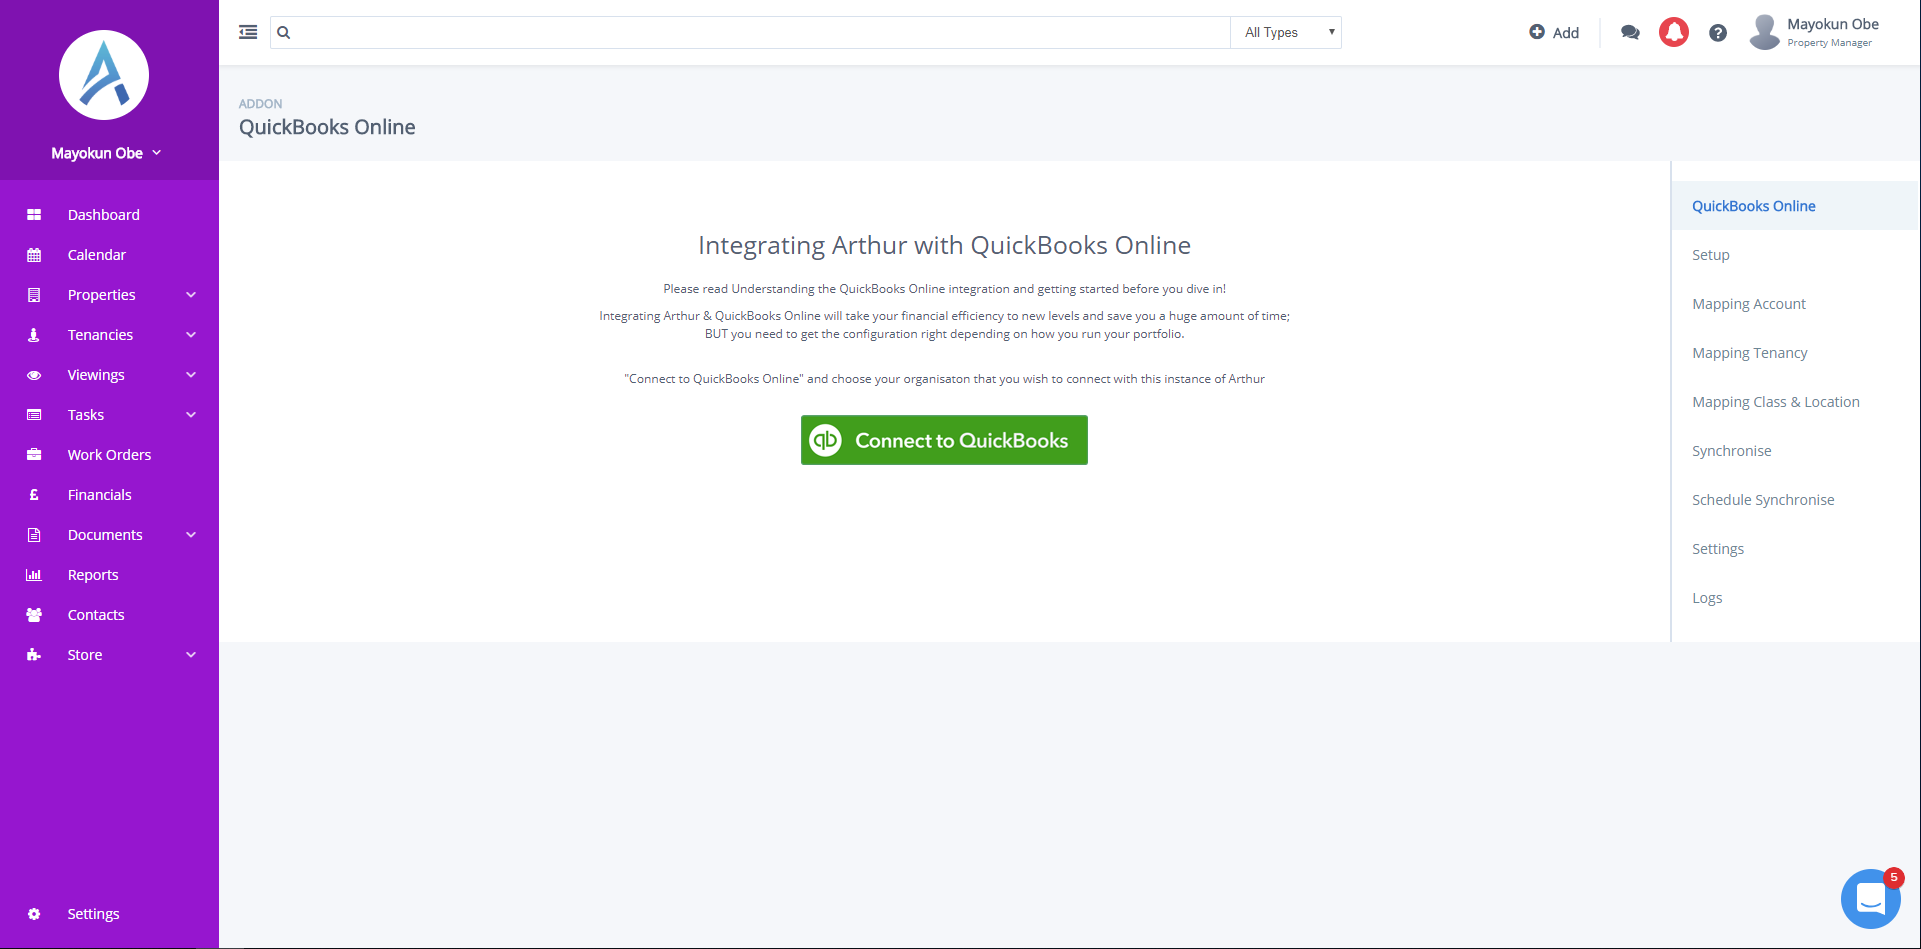 How Integrate Arthur and a Clean Version of QuickBooks Online Plus